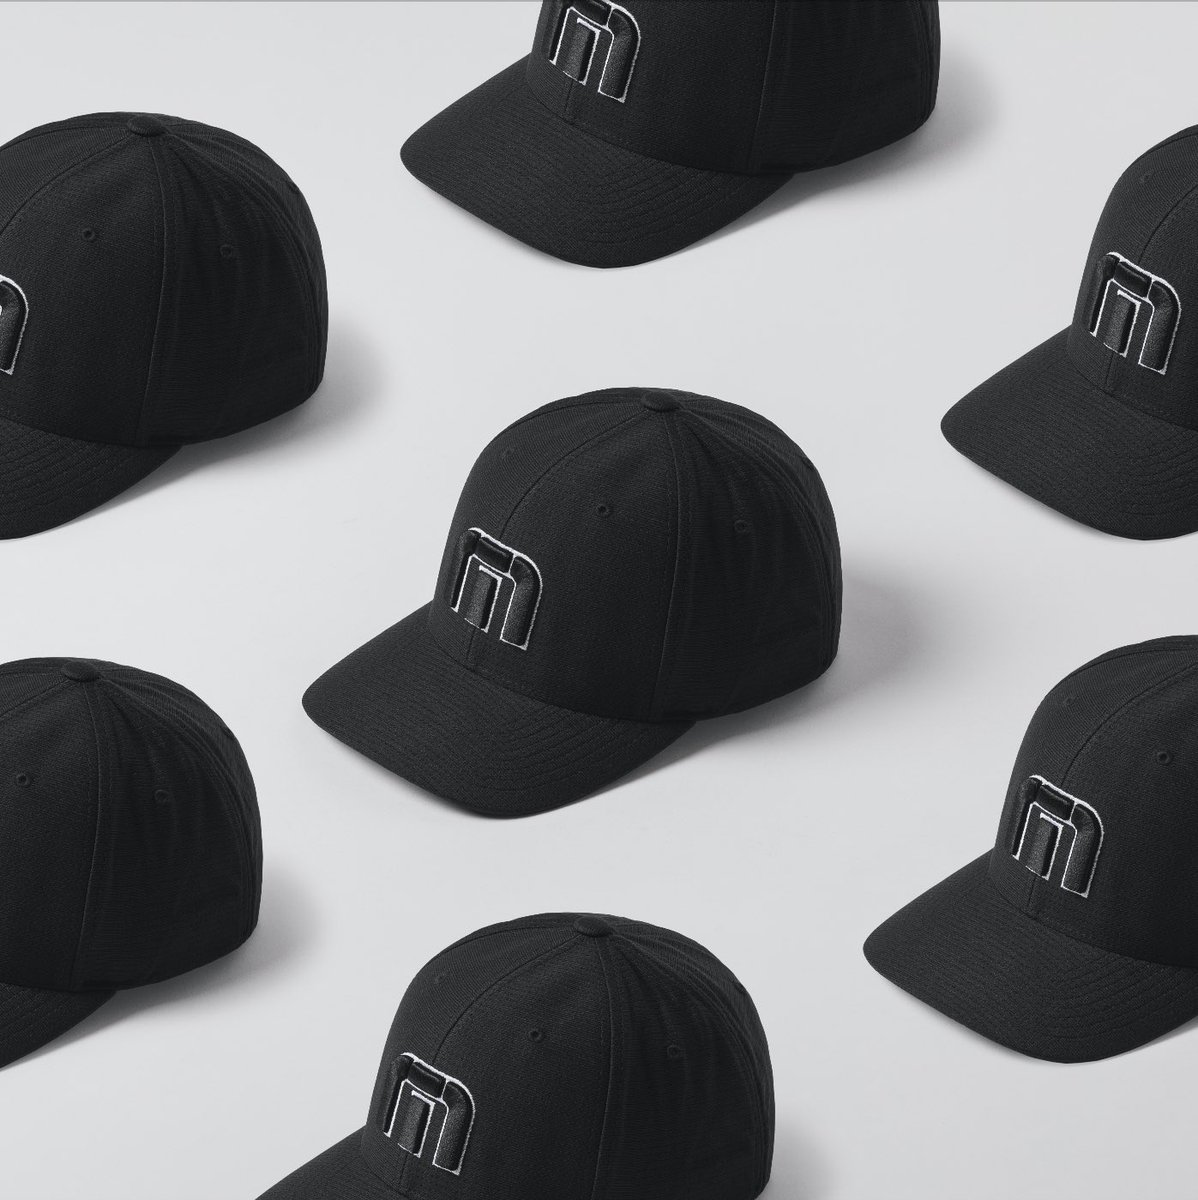 Hats off to those that have smashed their Monday .  #travismathew #cap #hat #mensfashion #workandplay pic.twitter.com/EUY0bqYGrd